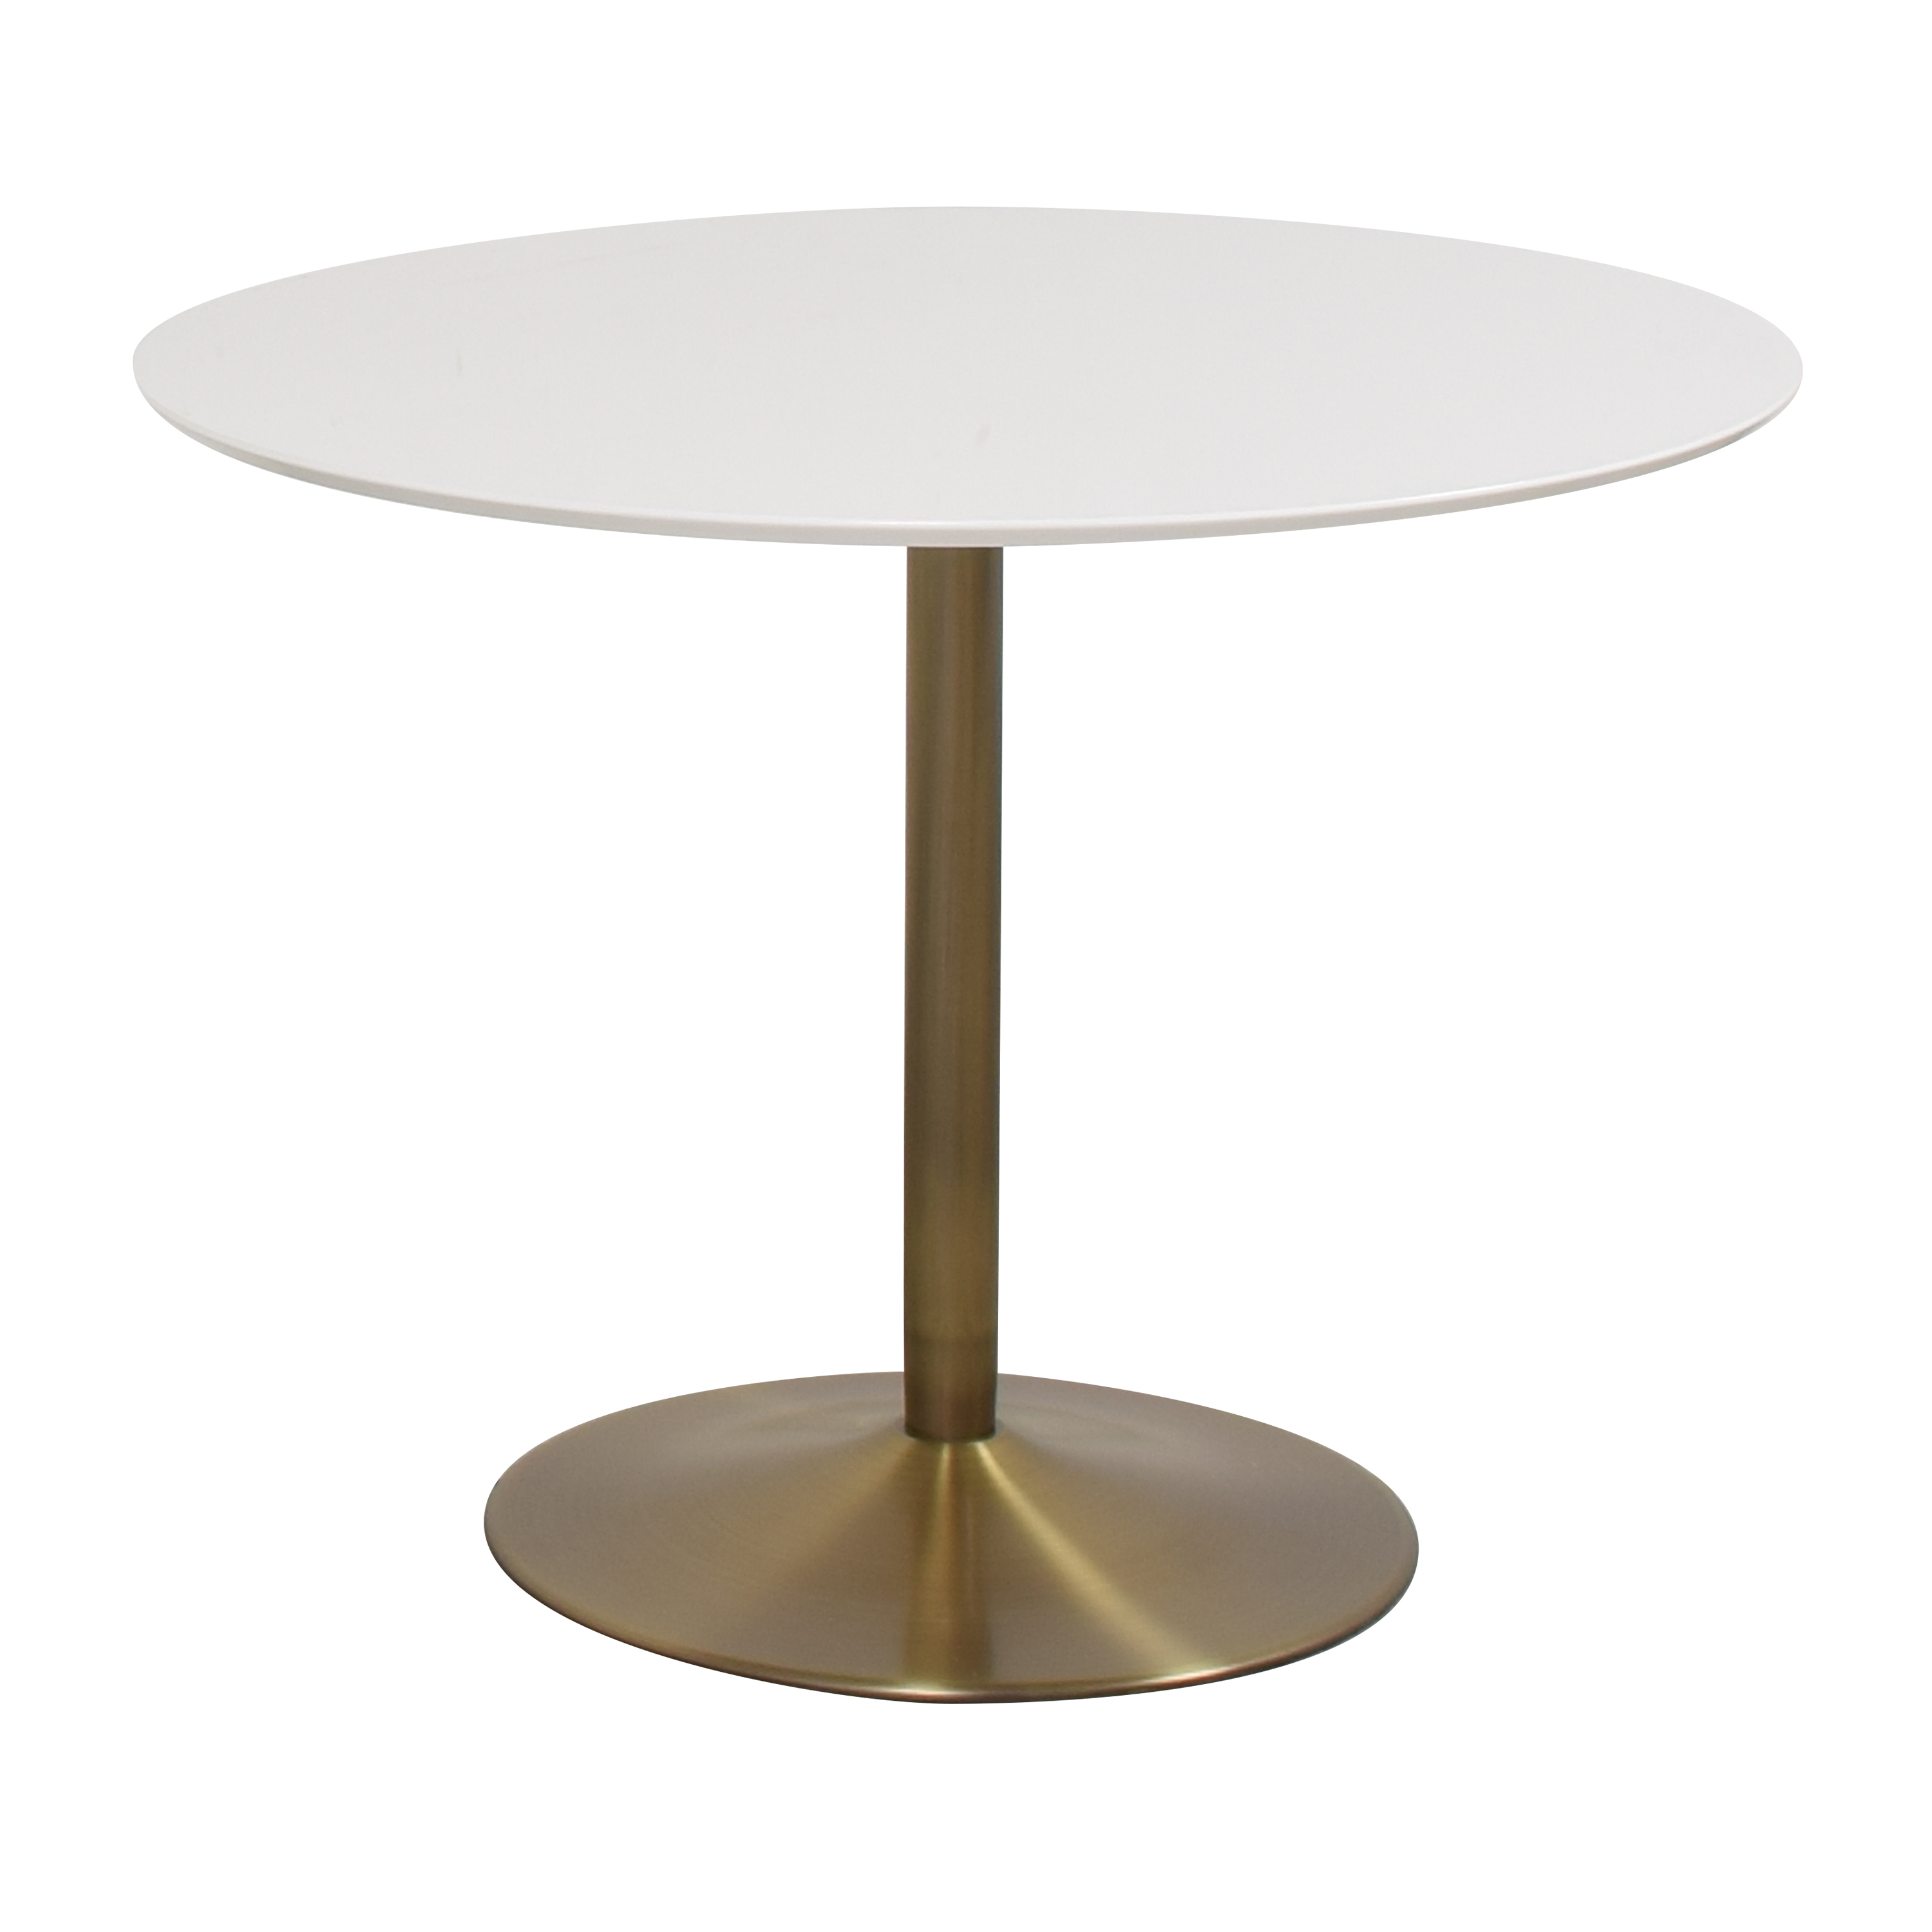 CB2 CB2 Odyssey Dining Table second hand